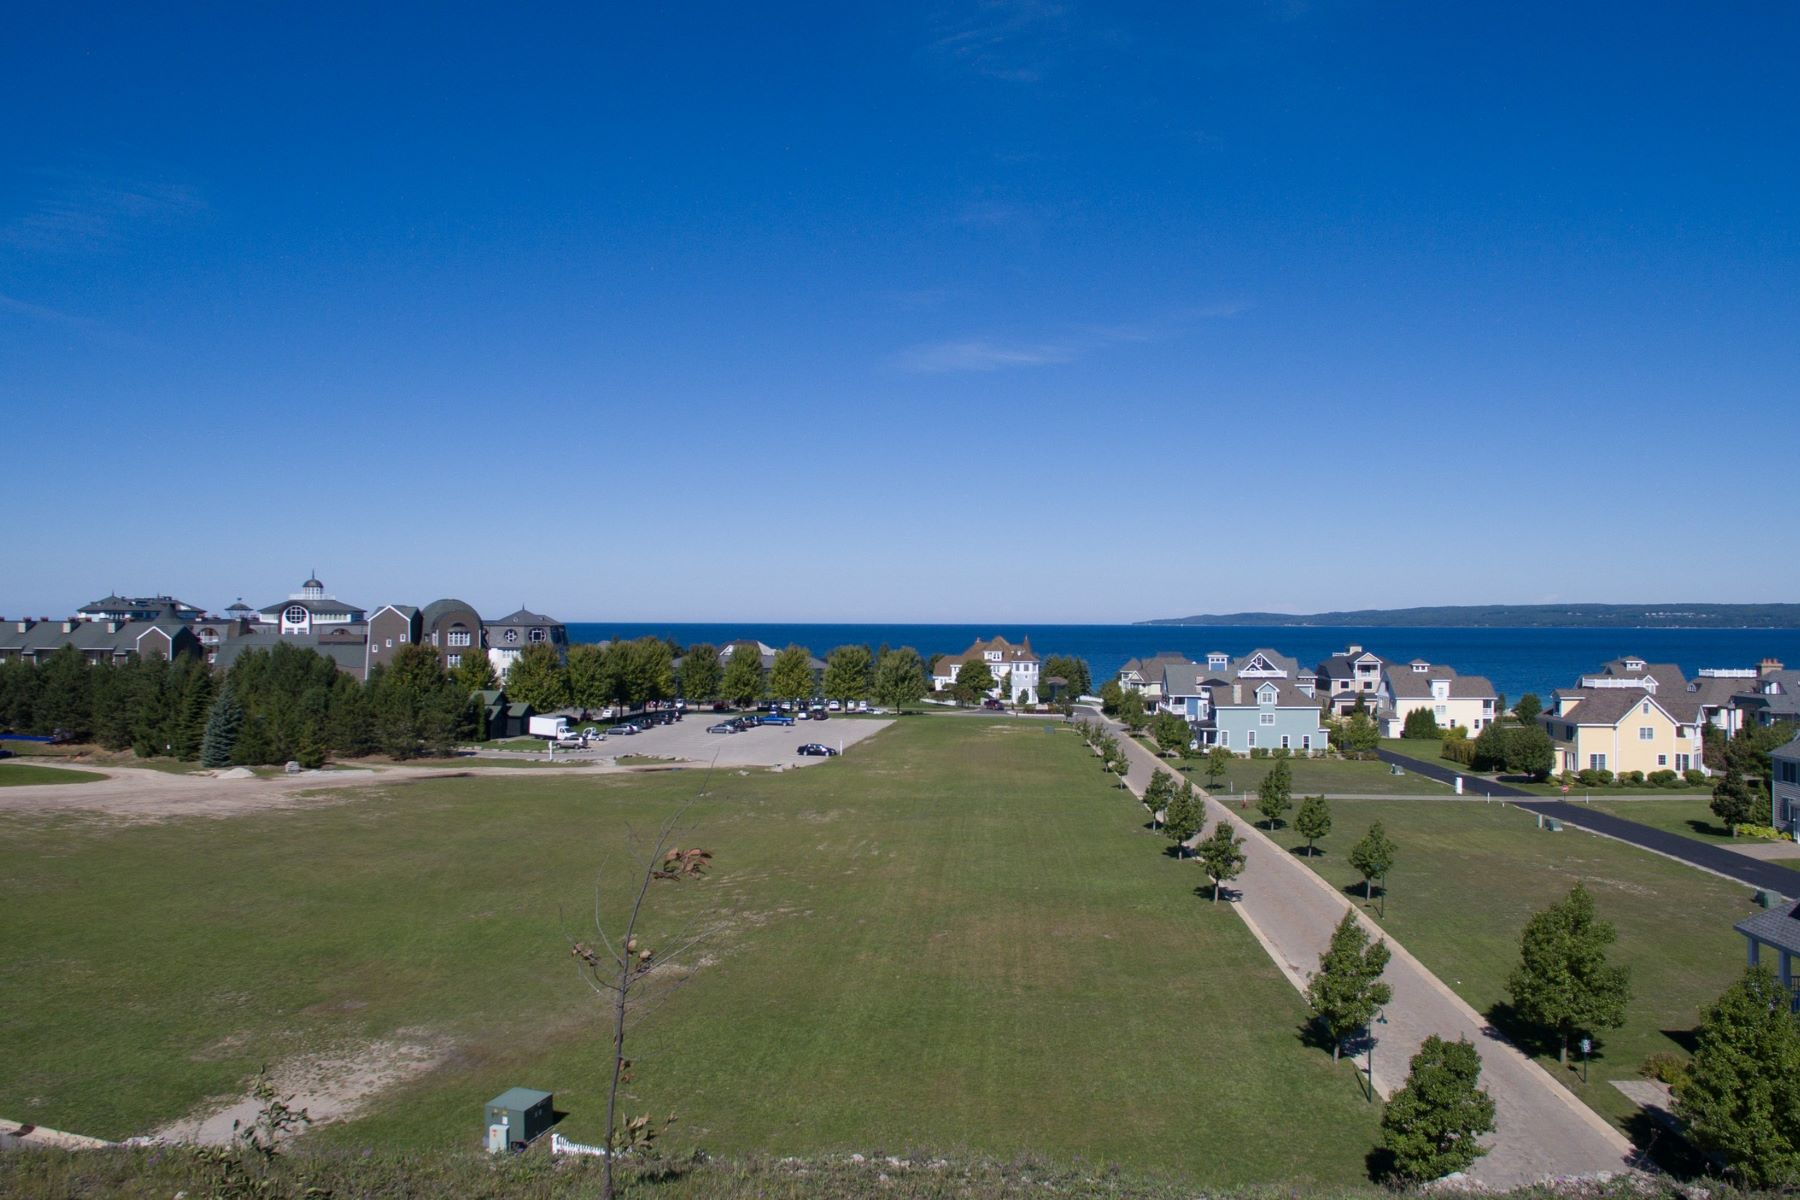 Land for Sale at Unit 5, The Ridge TBD Cliffs Drive, Unit 5, The Ridge Bay Harbor, Michigan, 49770 United States